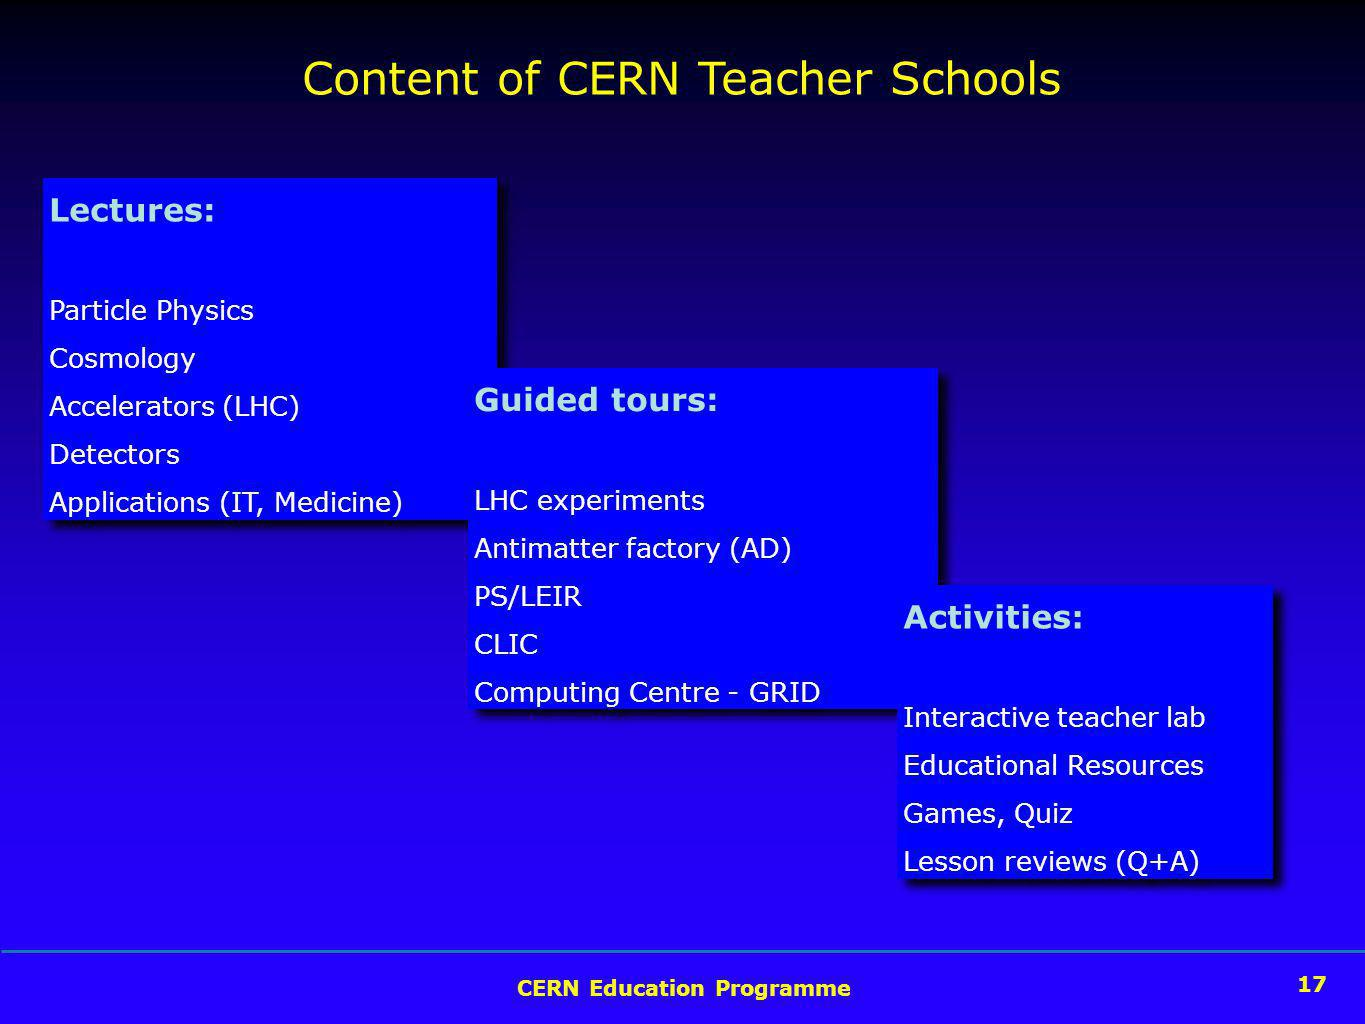 17 CERN Education Programme 17 Content of CERN Teacher Schools Lectures: Particle Physics Cosmology Accelerators (LHC) Detectors Applications (IT, Medicine) Lectures: Particle Physics Cosmology Accelerators (LHC) Detectors Applications (IT, Medicine) Guided tours: LHC experiments Antimatter factory (AD) PS/LEIR CLIC Computing Centre - GRID Guided tours: LHC experiments Antimatter factory (AD) PS/LEIR CLIC Computing Centre - GRID Activities: Interactive teacher lab Educational Resources Games, Quiz Lesson reviews (Q+A) Activities: Interactive teacher lab Educational Resources Games, Quiz Lesson reviews (Q+A)